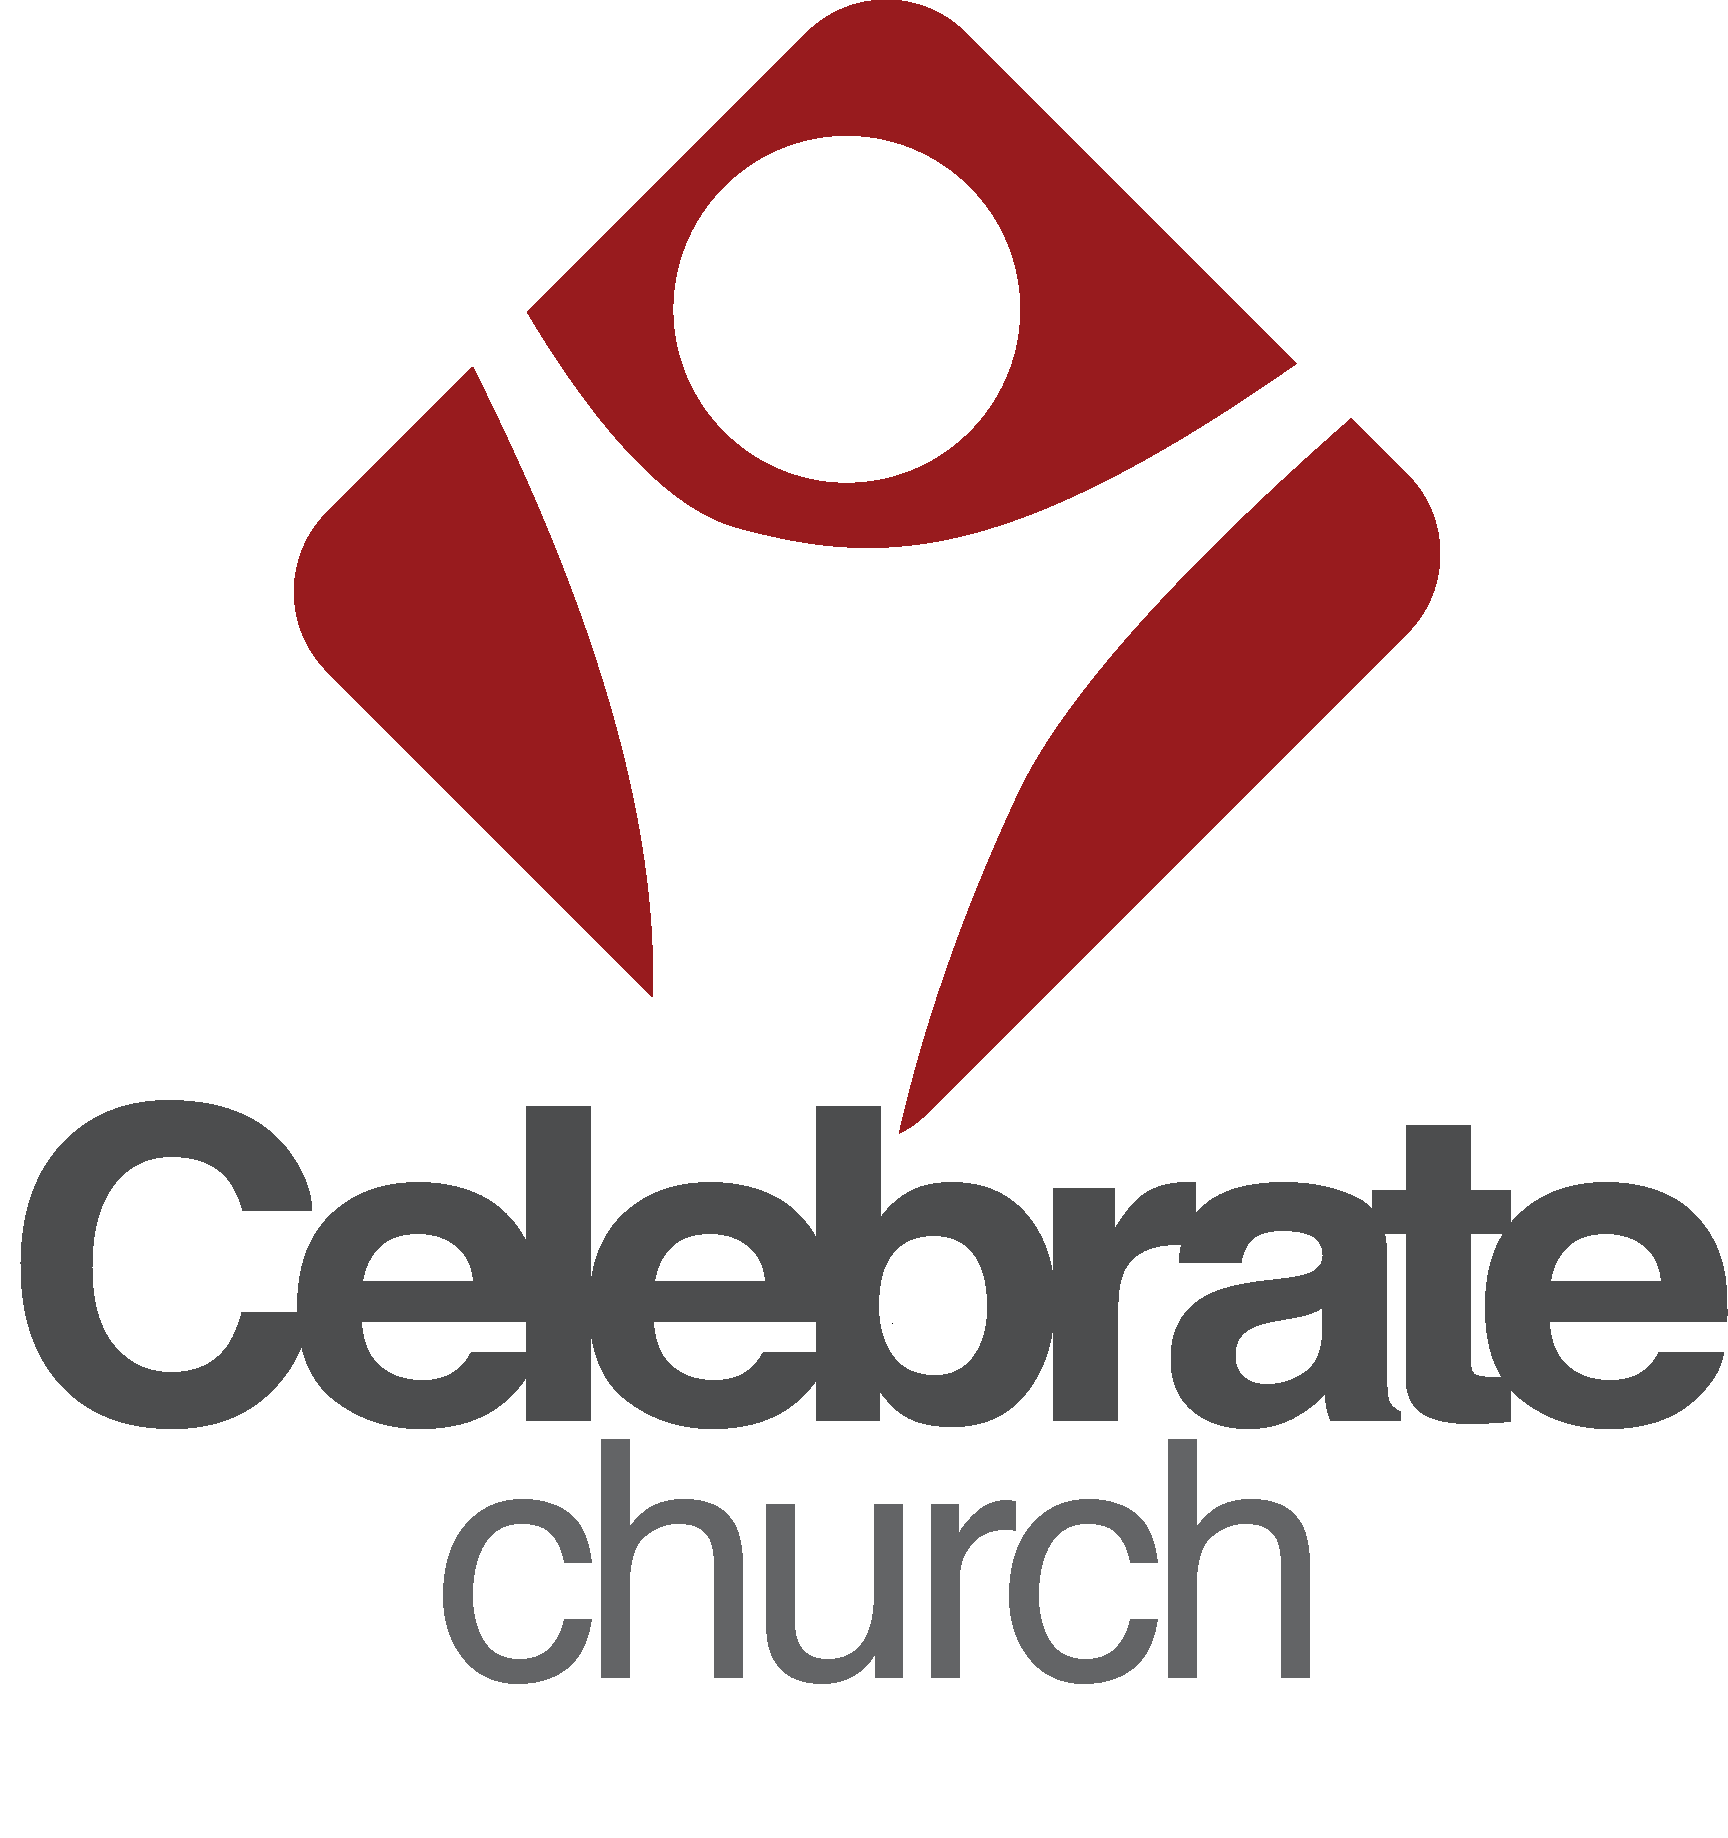 Welcome to Celebrate Church